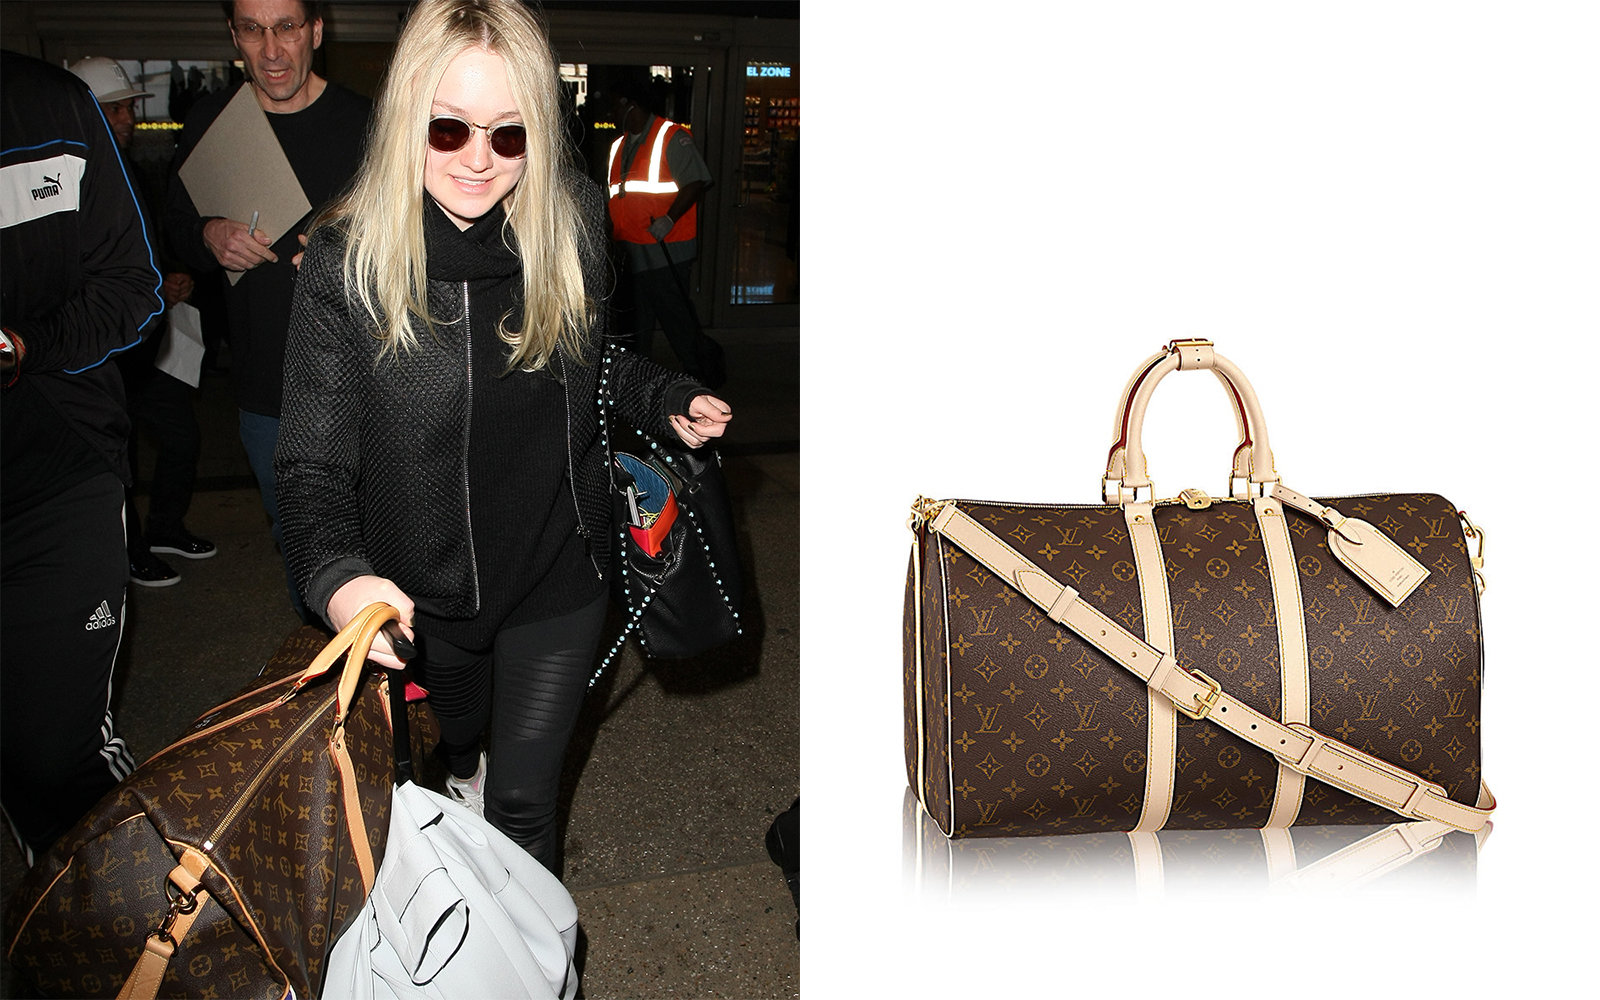 louis vuitton overnight bag. louis vuitton dakota fanning celebrity luggage overnight bag